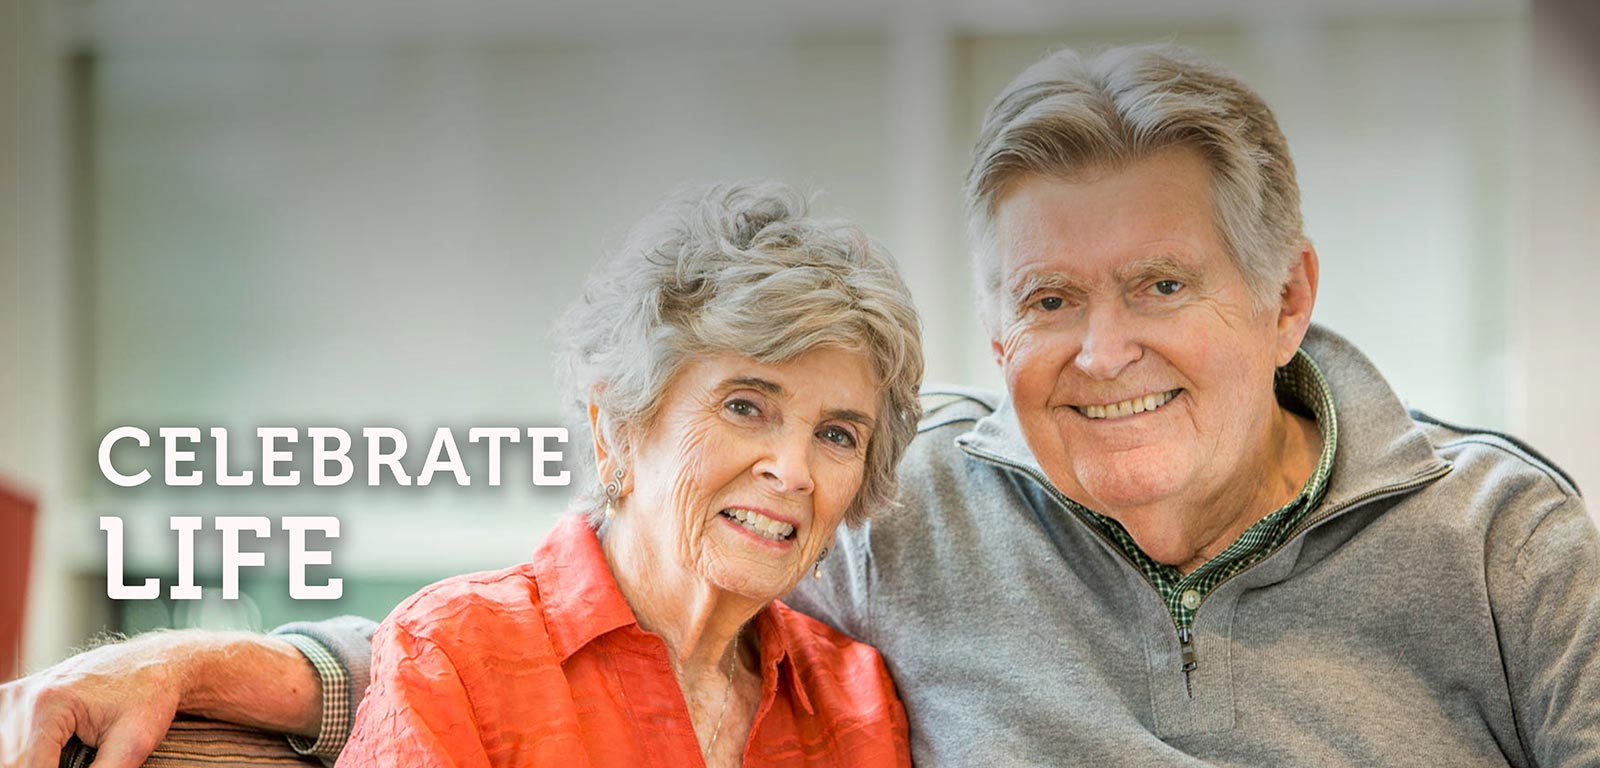 evergreen park senior personals At evergreen place we want seniors to live life their way that s why we provide worry-free living in individual apartments where each senior receives as much o.